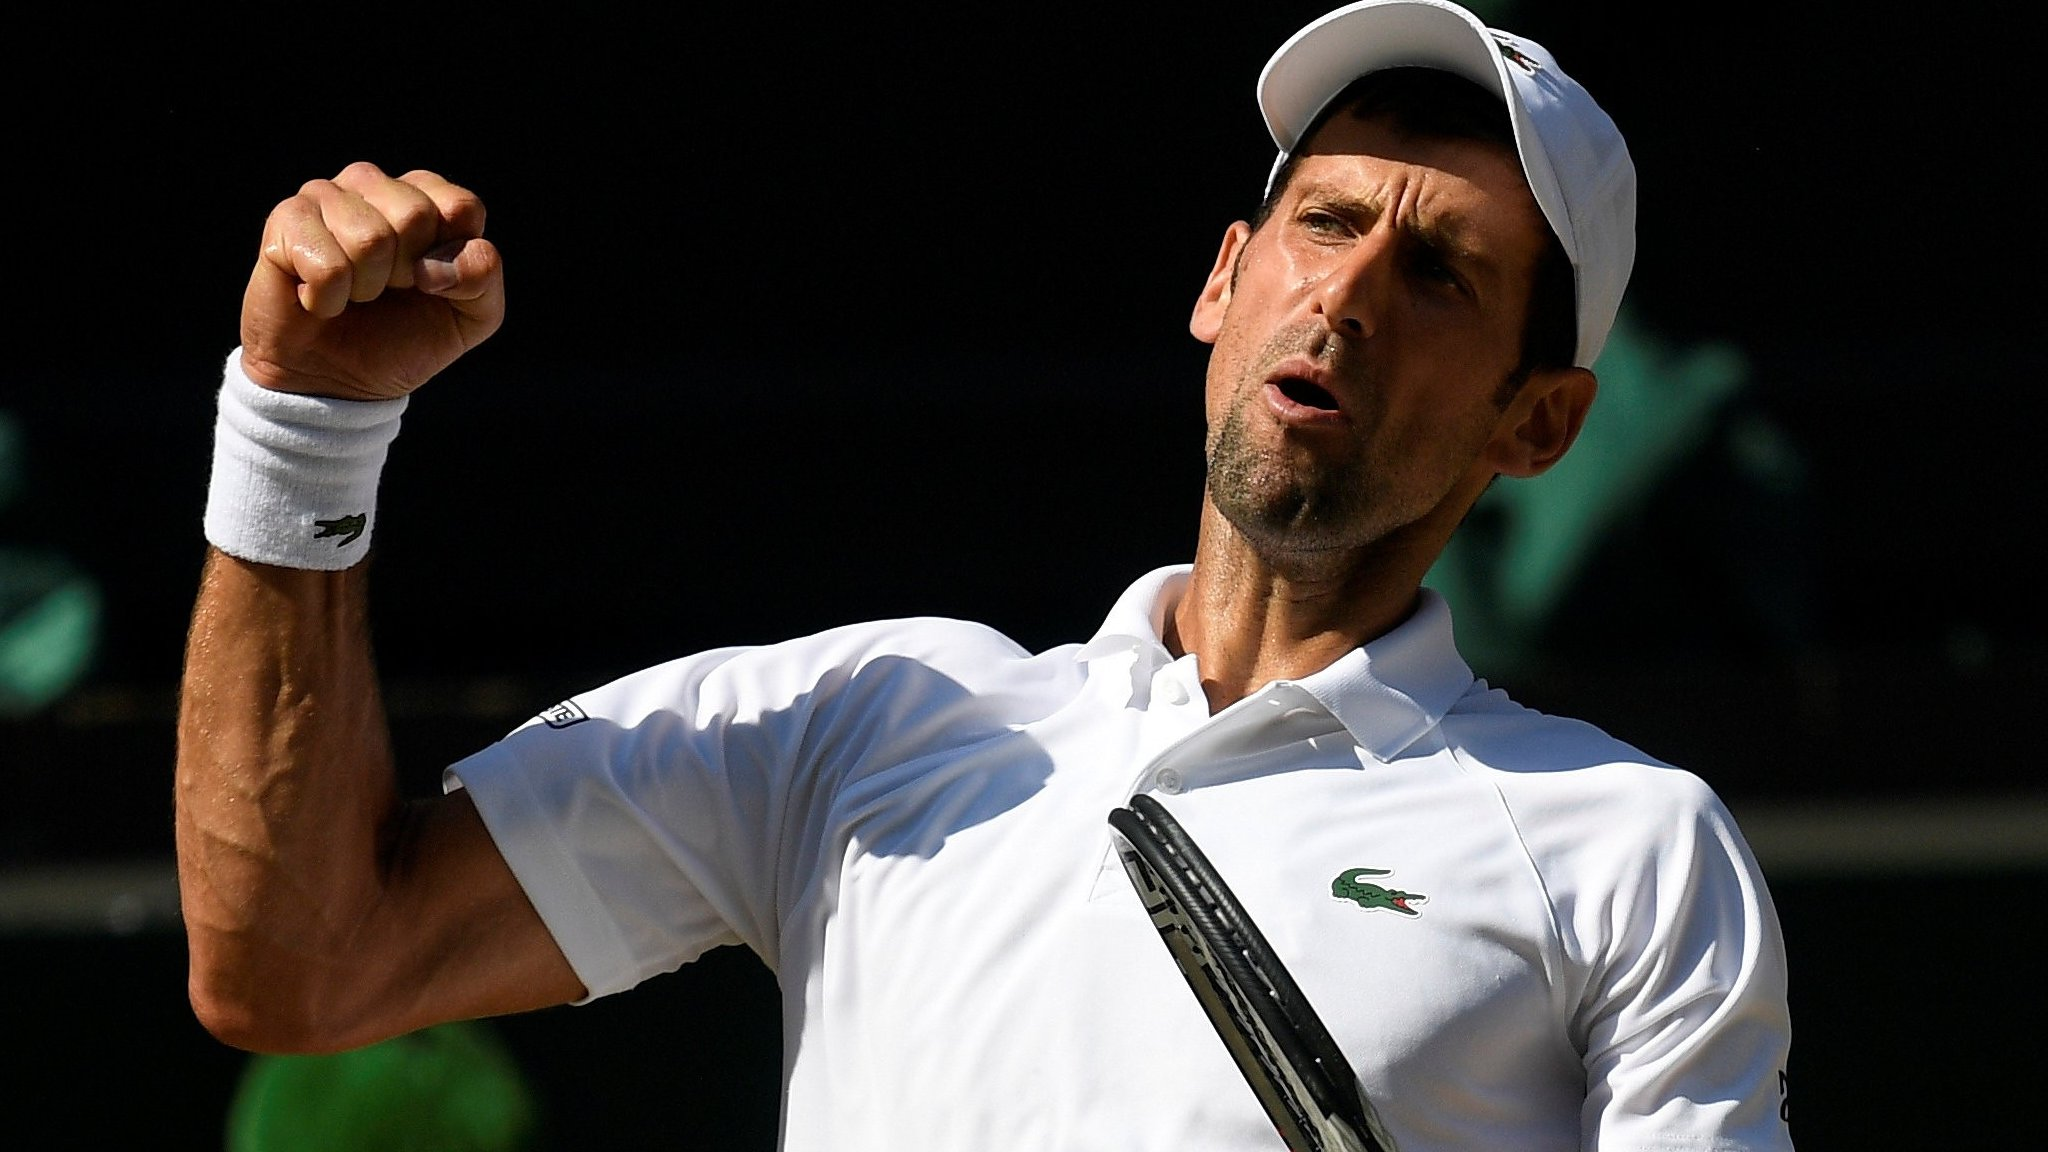 Novak Djokovic: Wimbledon champion doubted another Grand Slam win